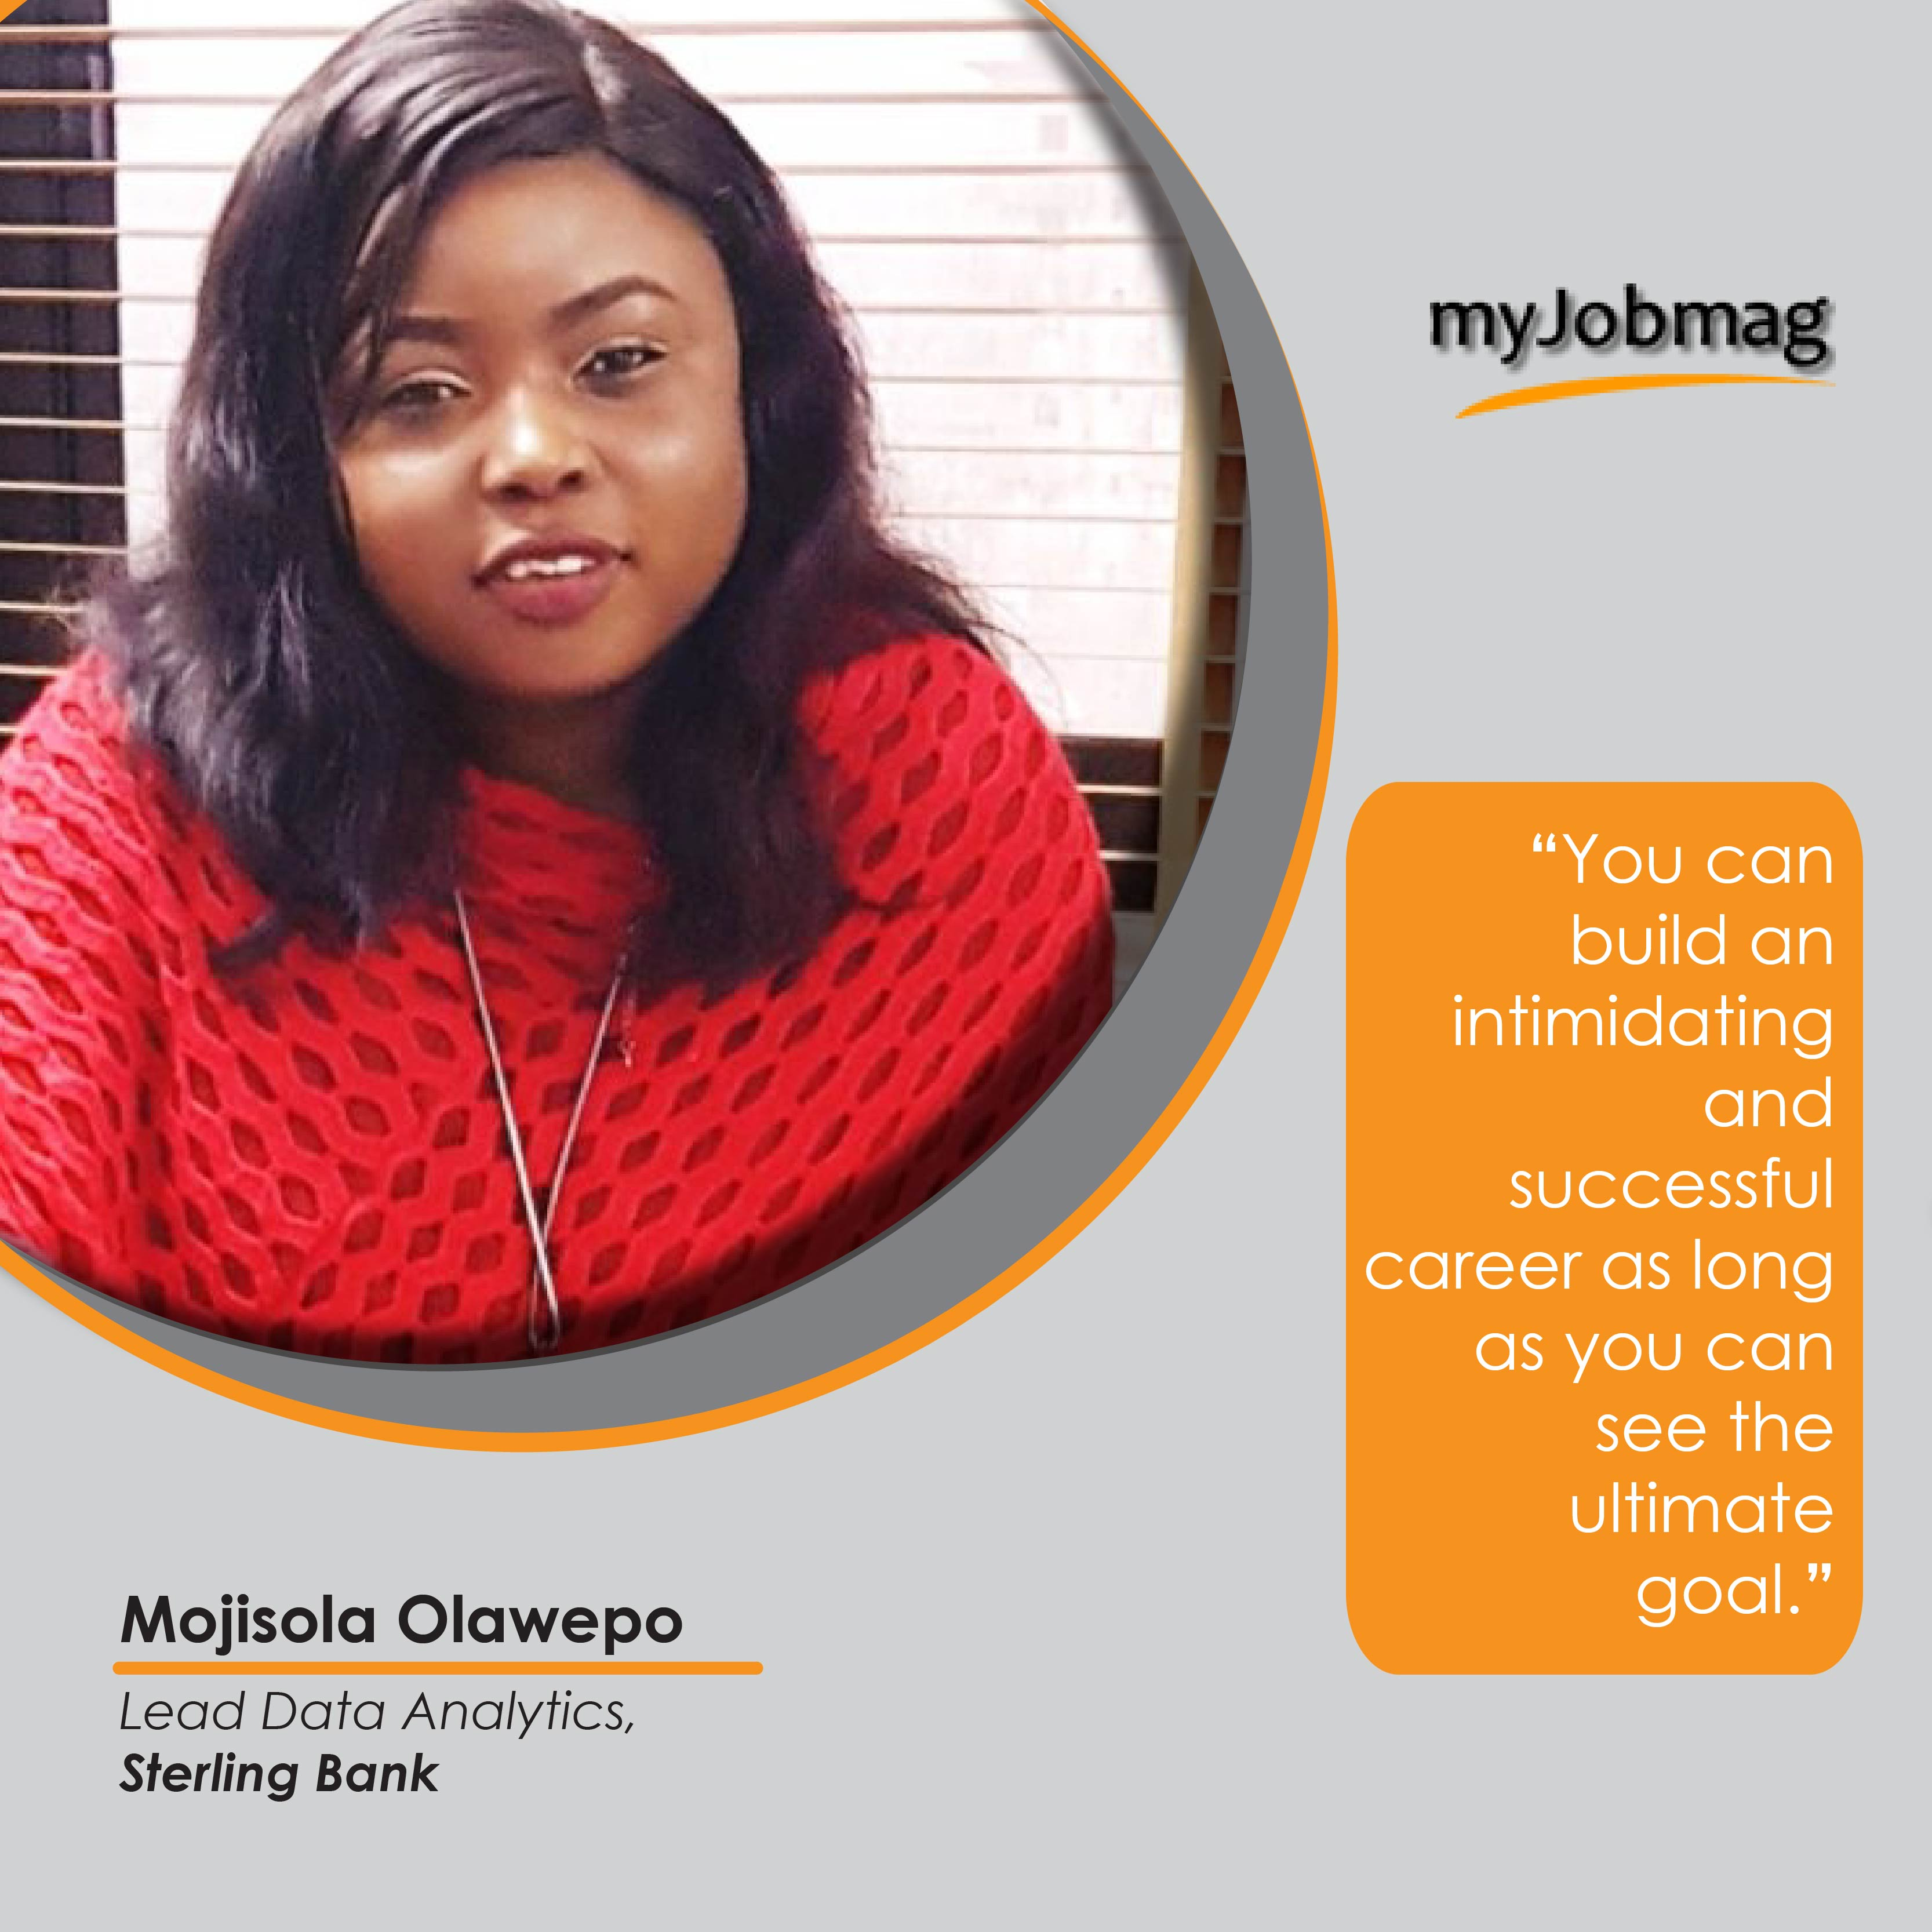 Mojisola Olawepo career advice MyJobmag